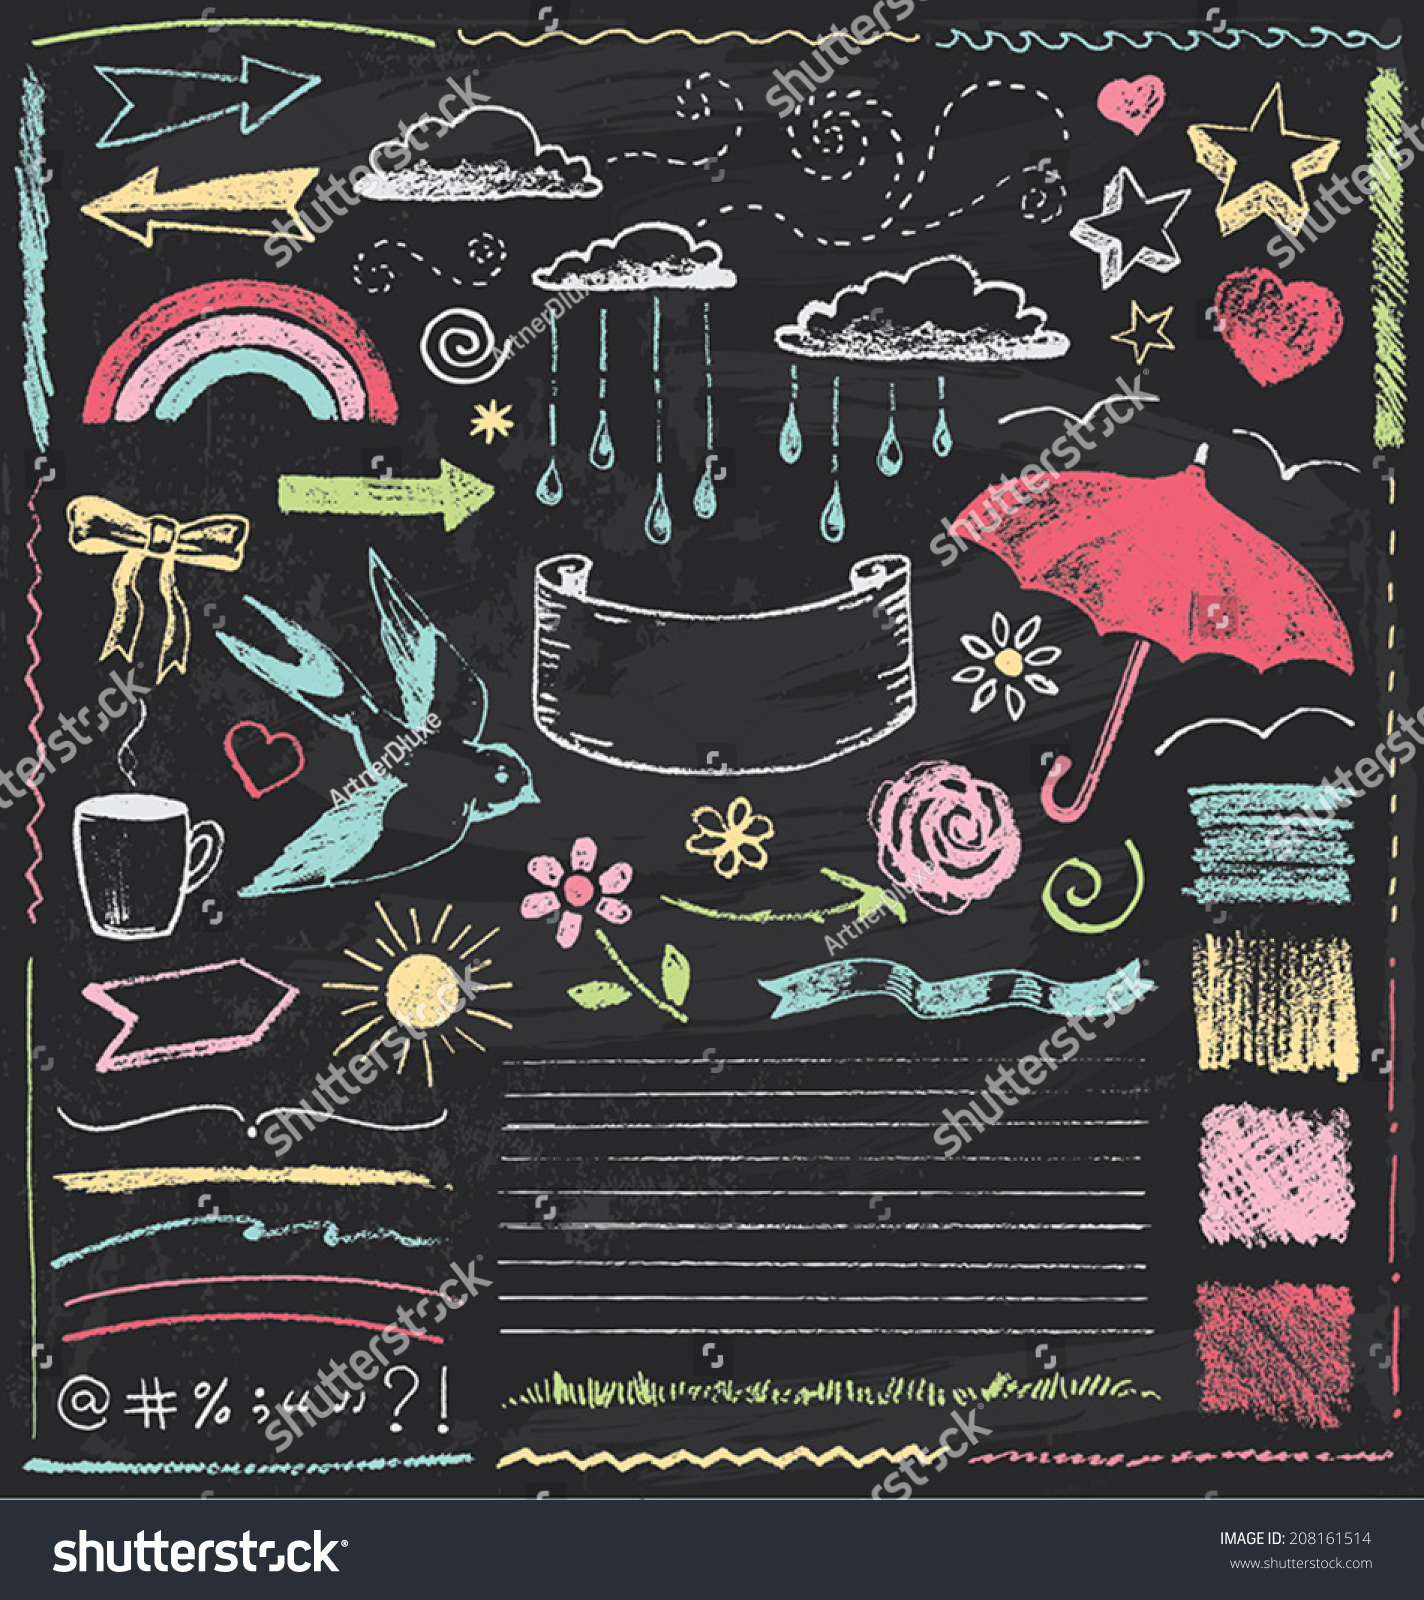 chalkboard designs ideas homestartxcom - Chalkboard Designs Ideas